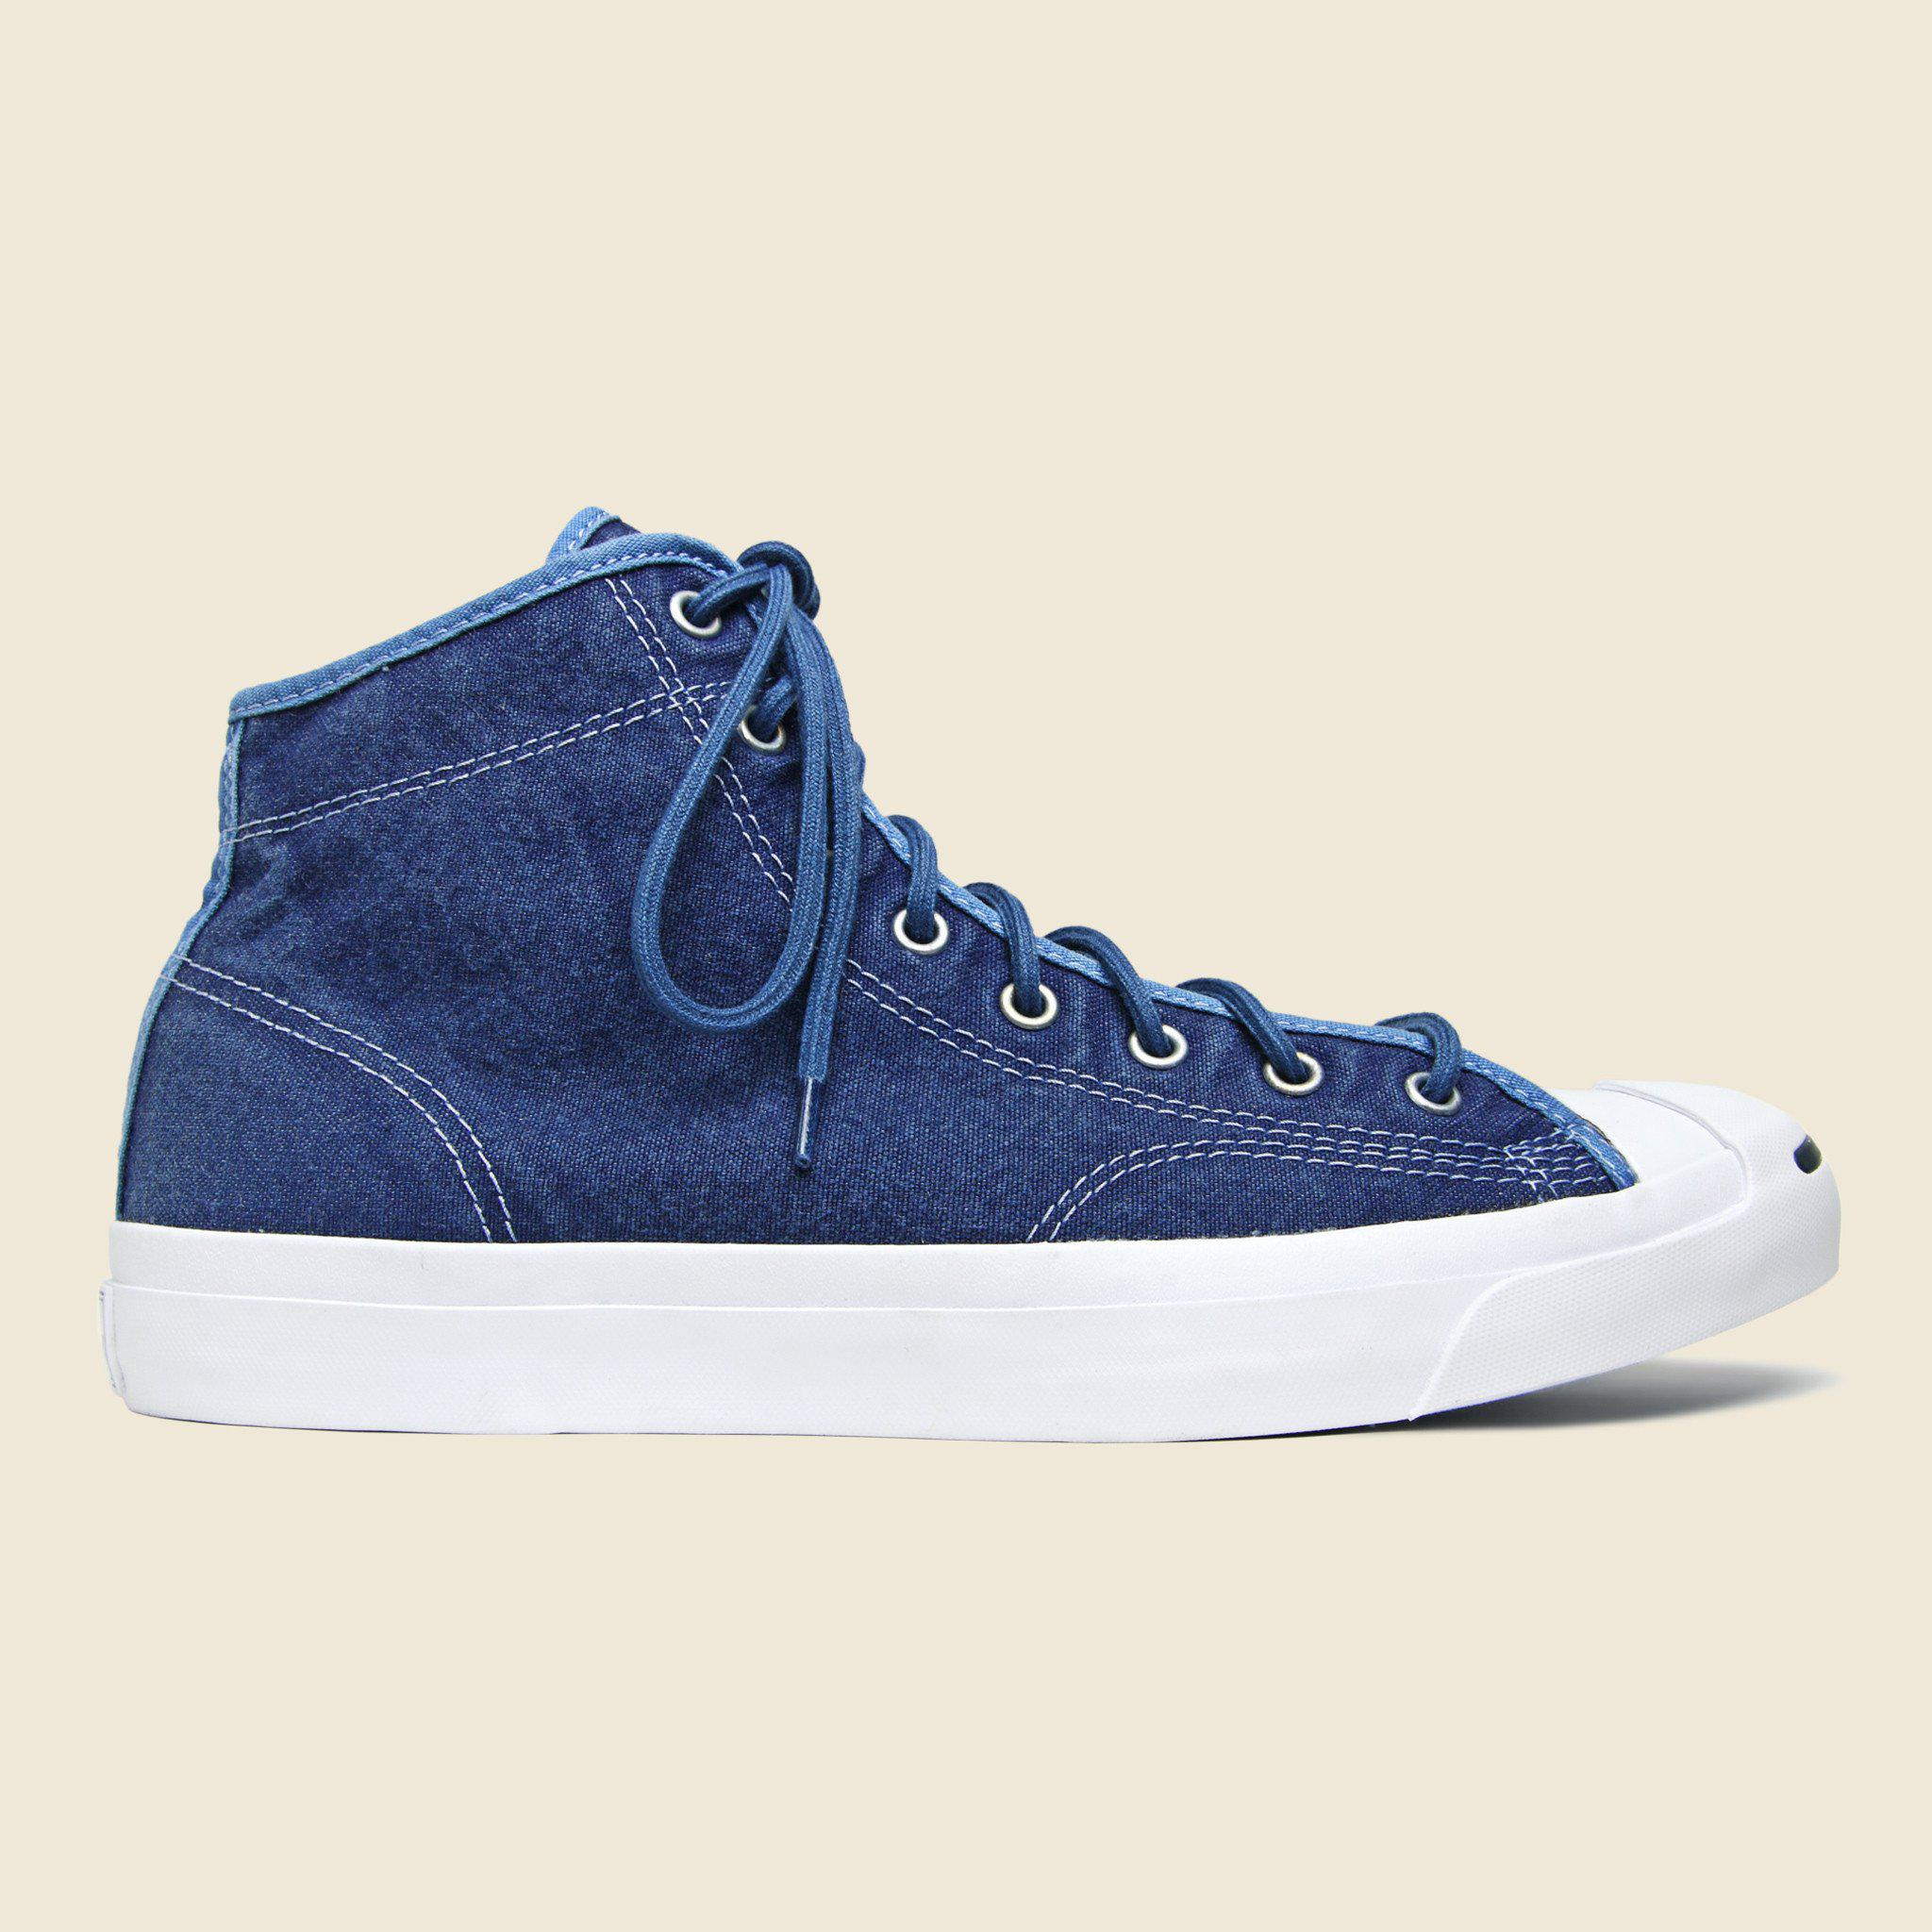 3587db5144f0 Lyst - Converse Jack Purcell Hi Top - Navy white in Blue for Men